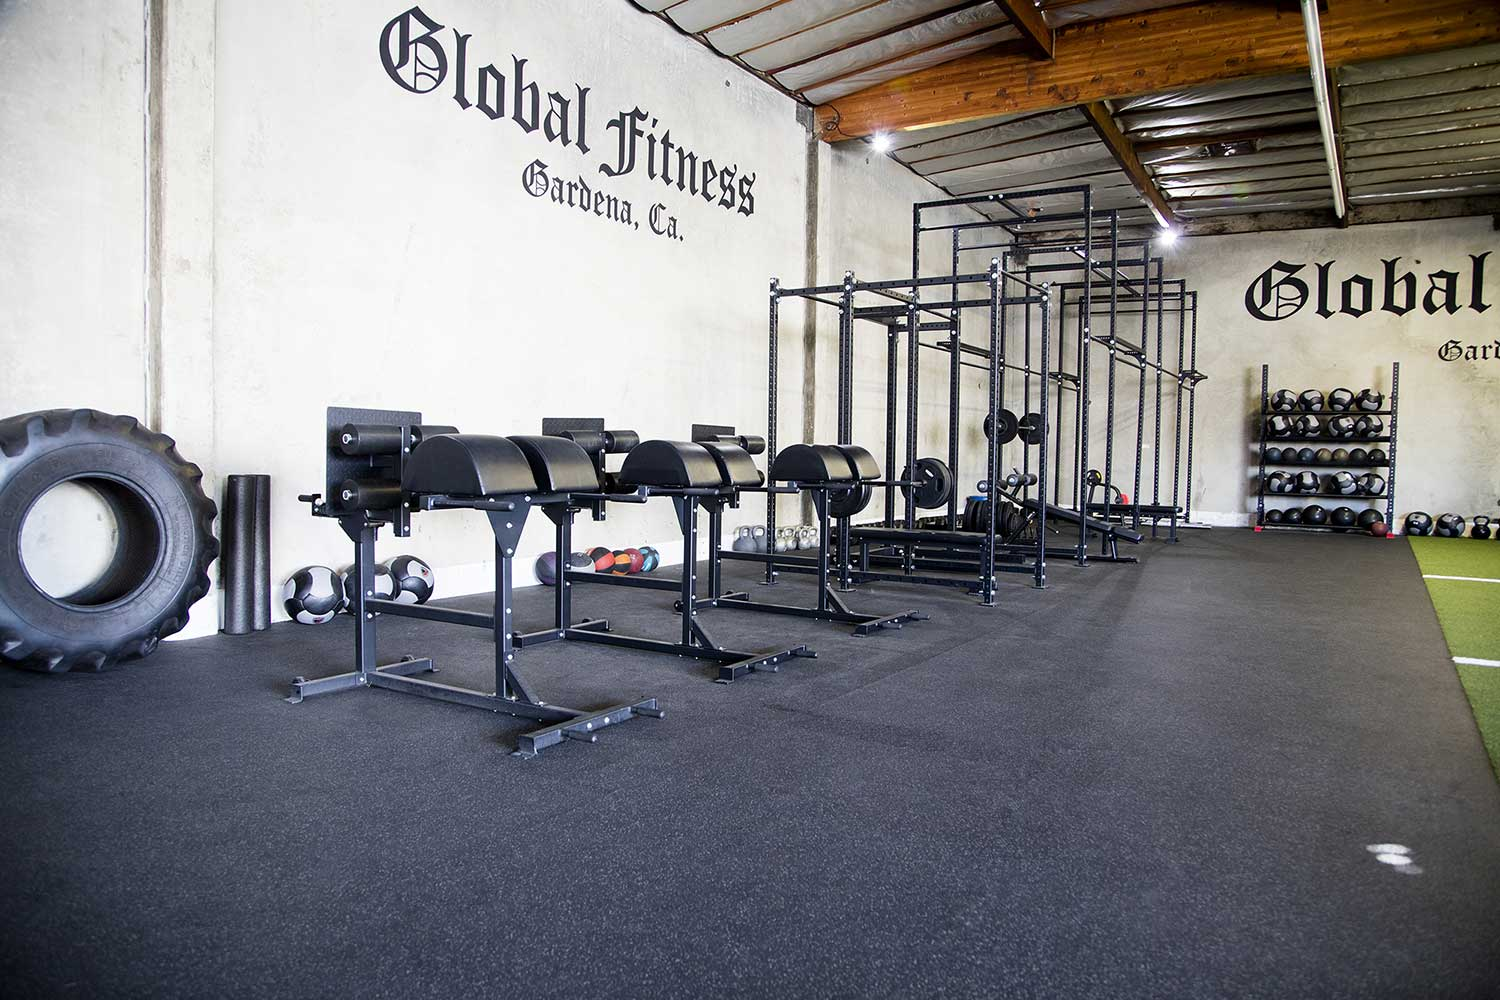 global-fitness-studio-GYM3.jpg